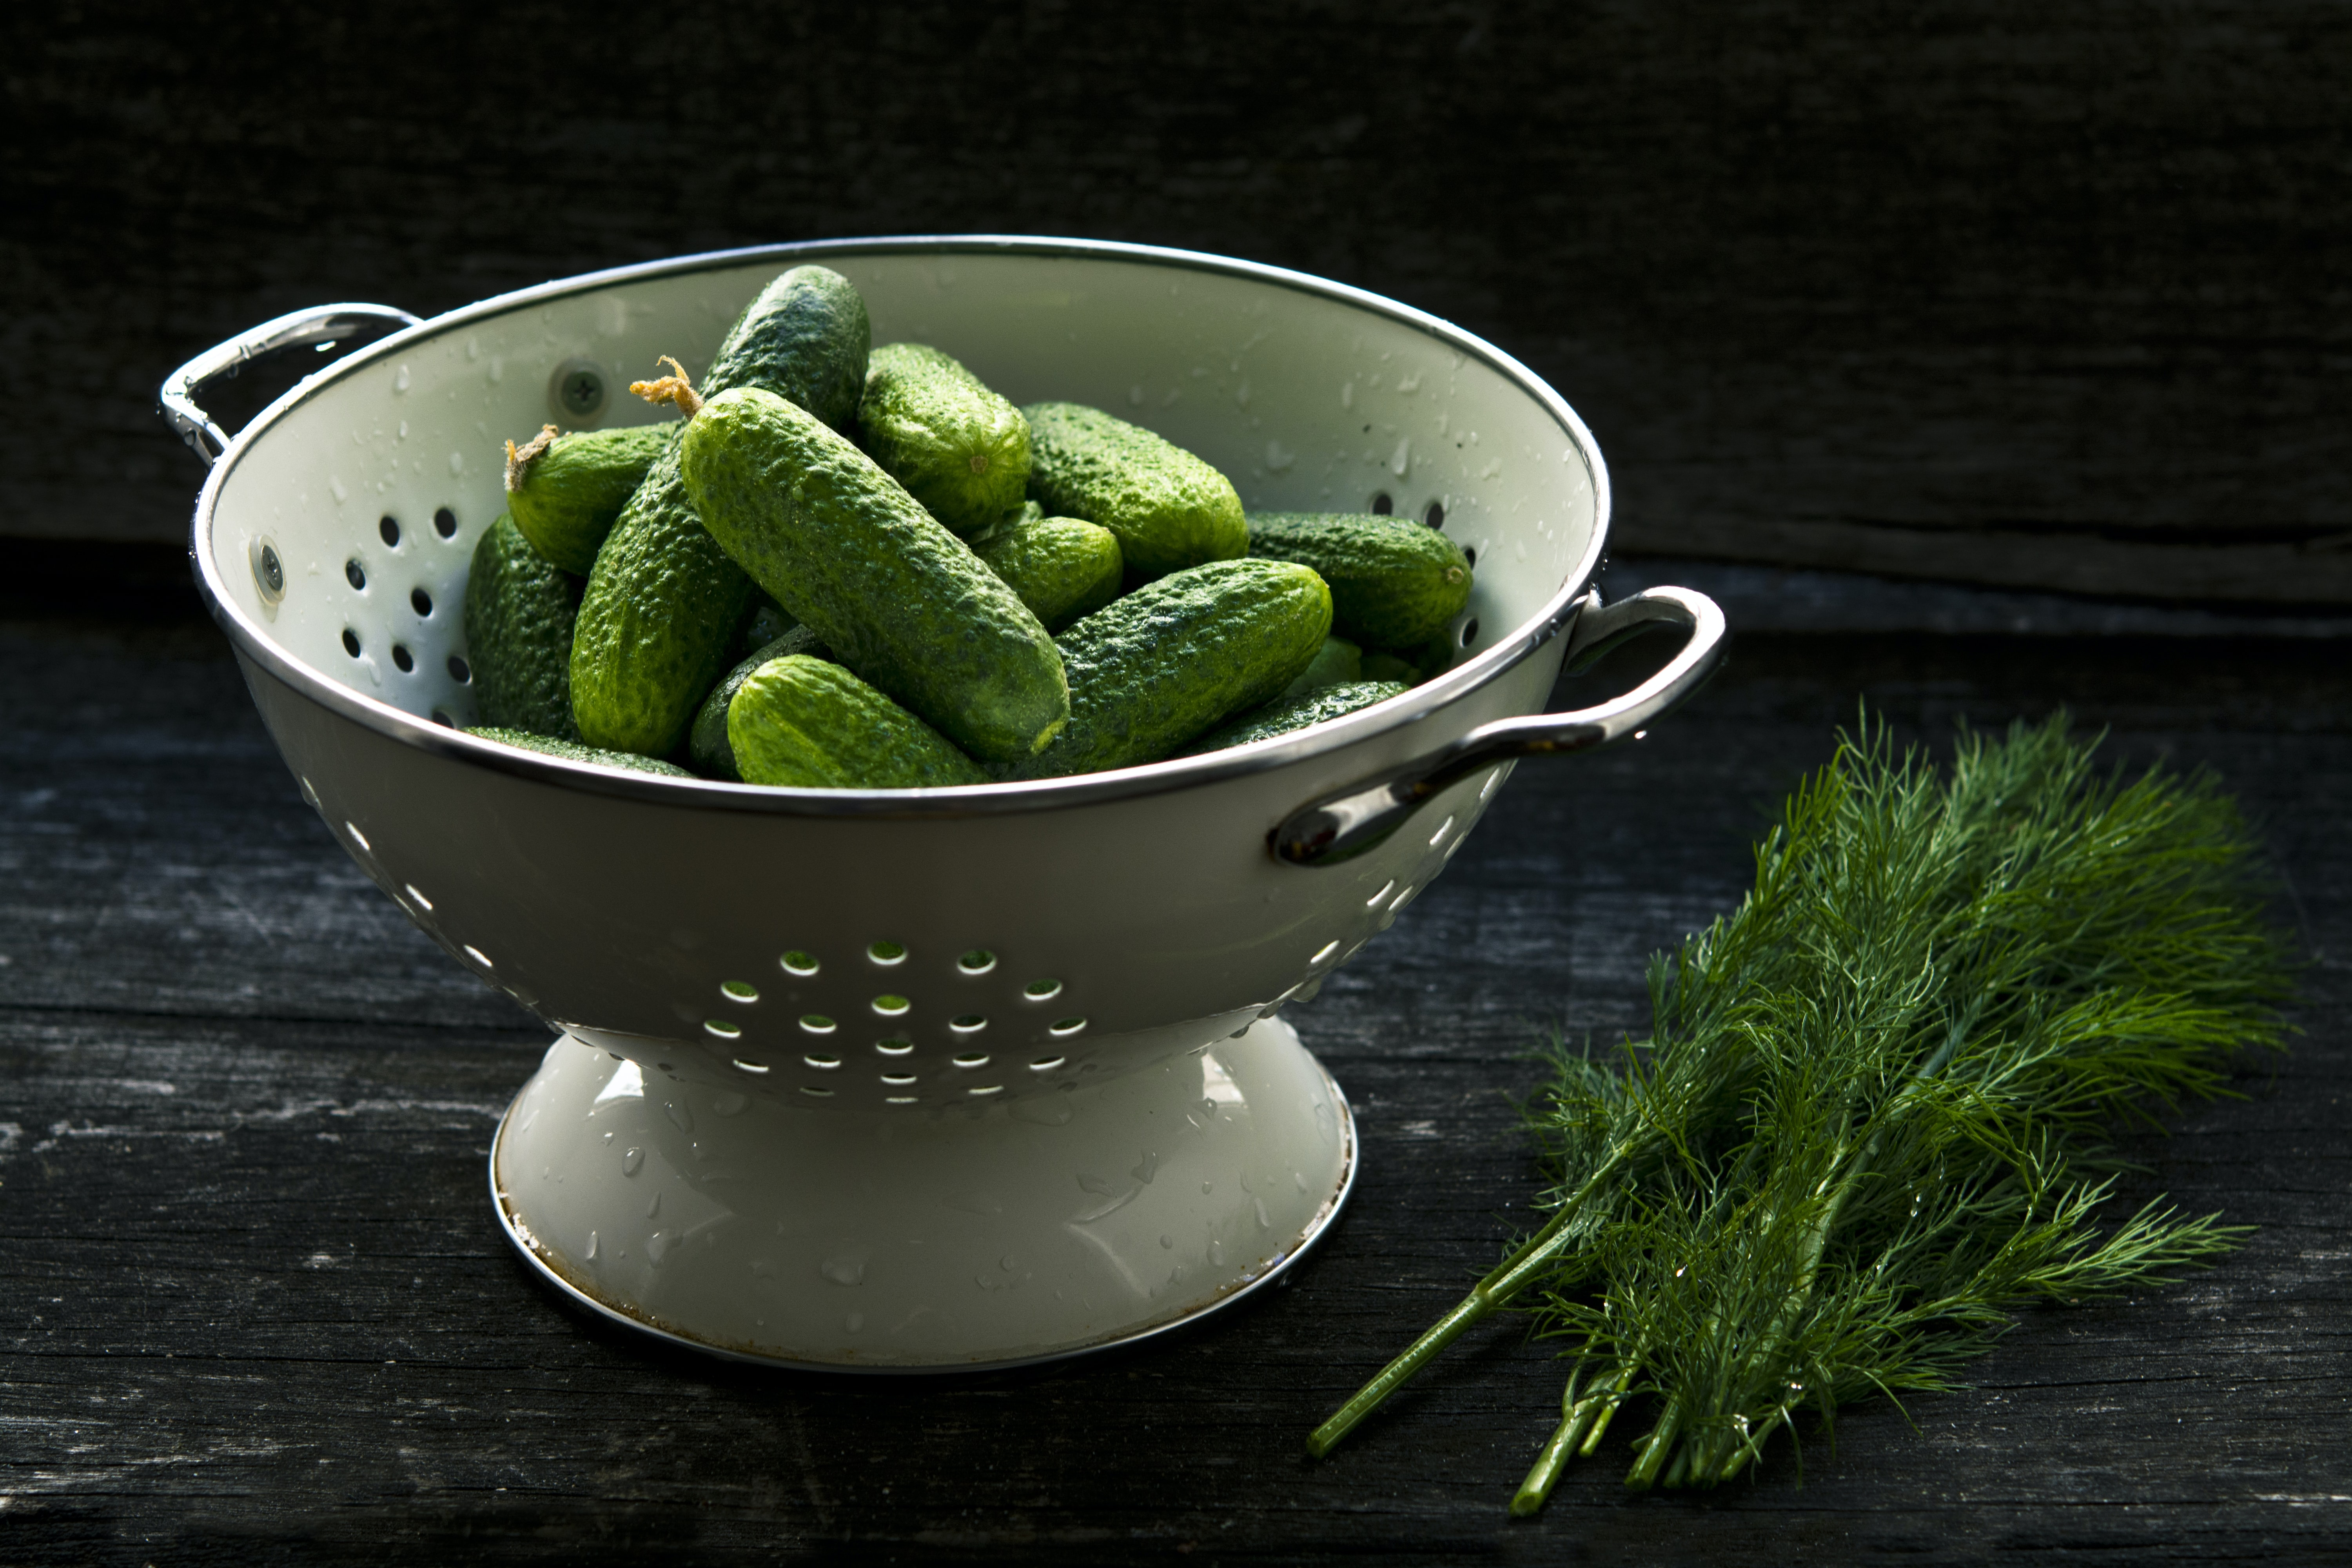 Colander with fresh cucumbers on a table next to dill and herbs